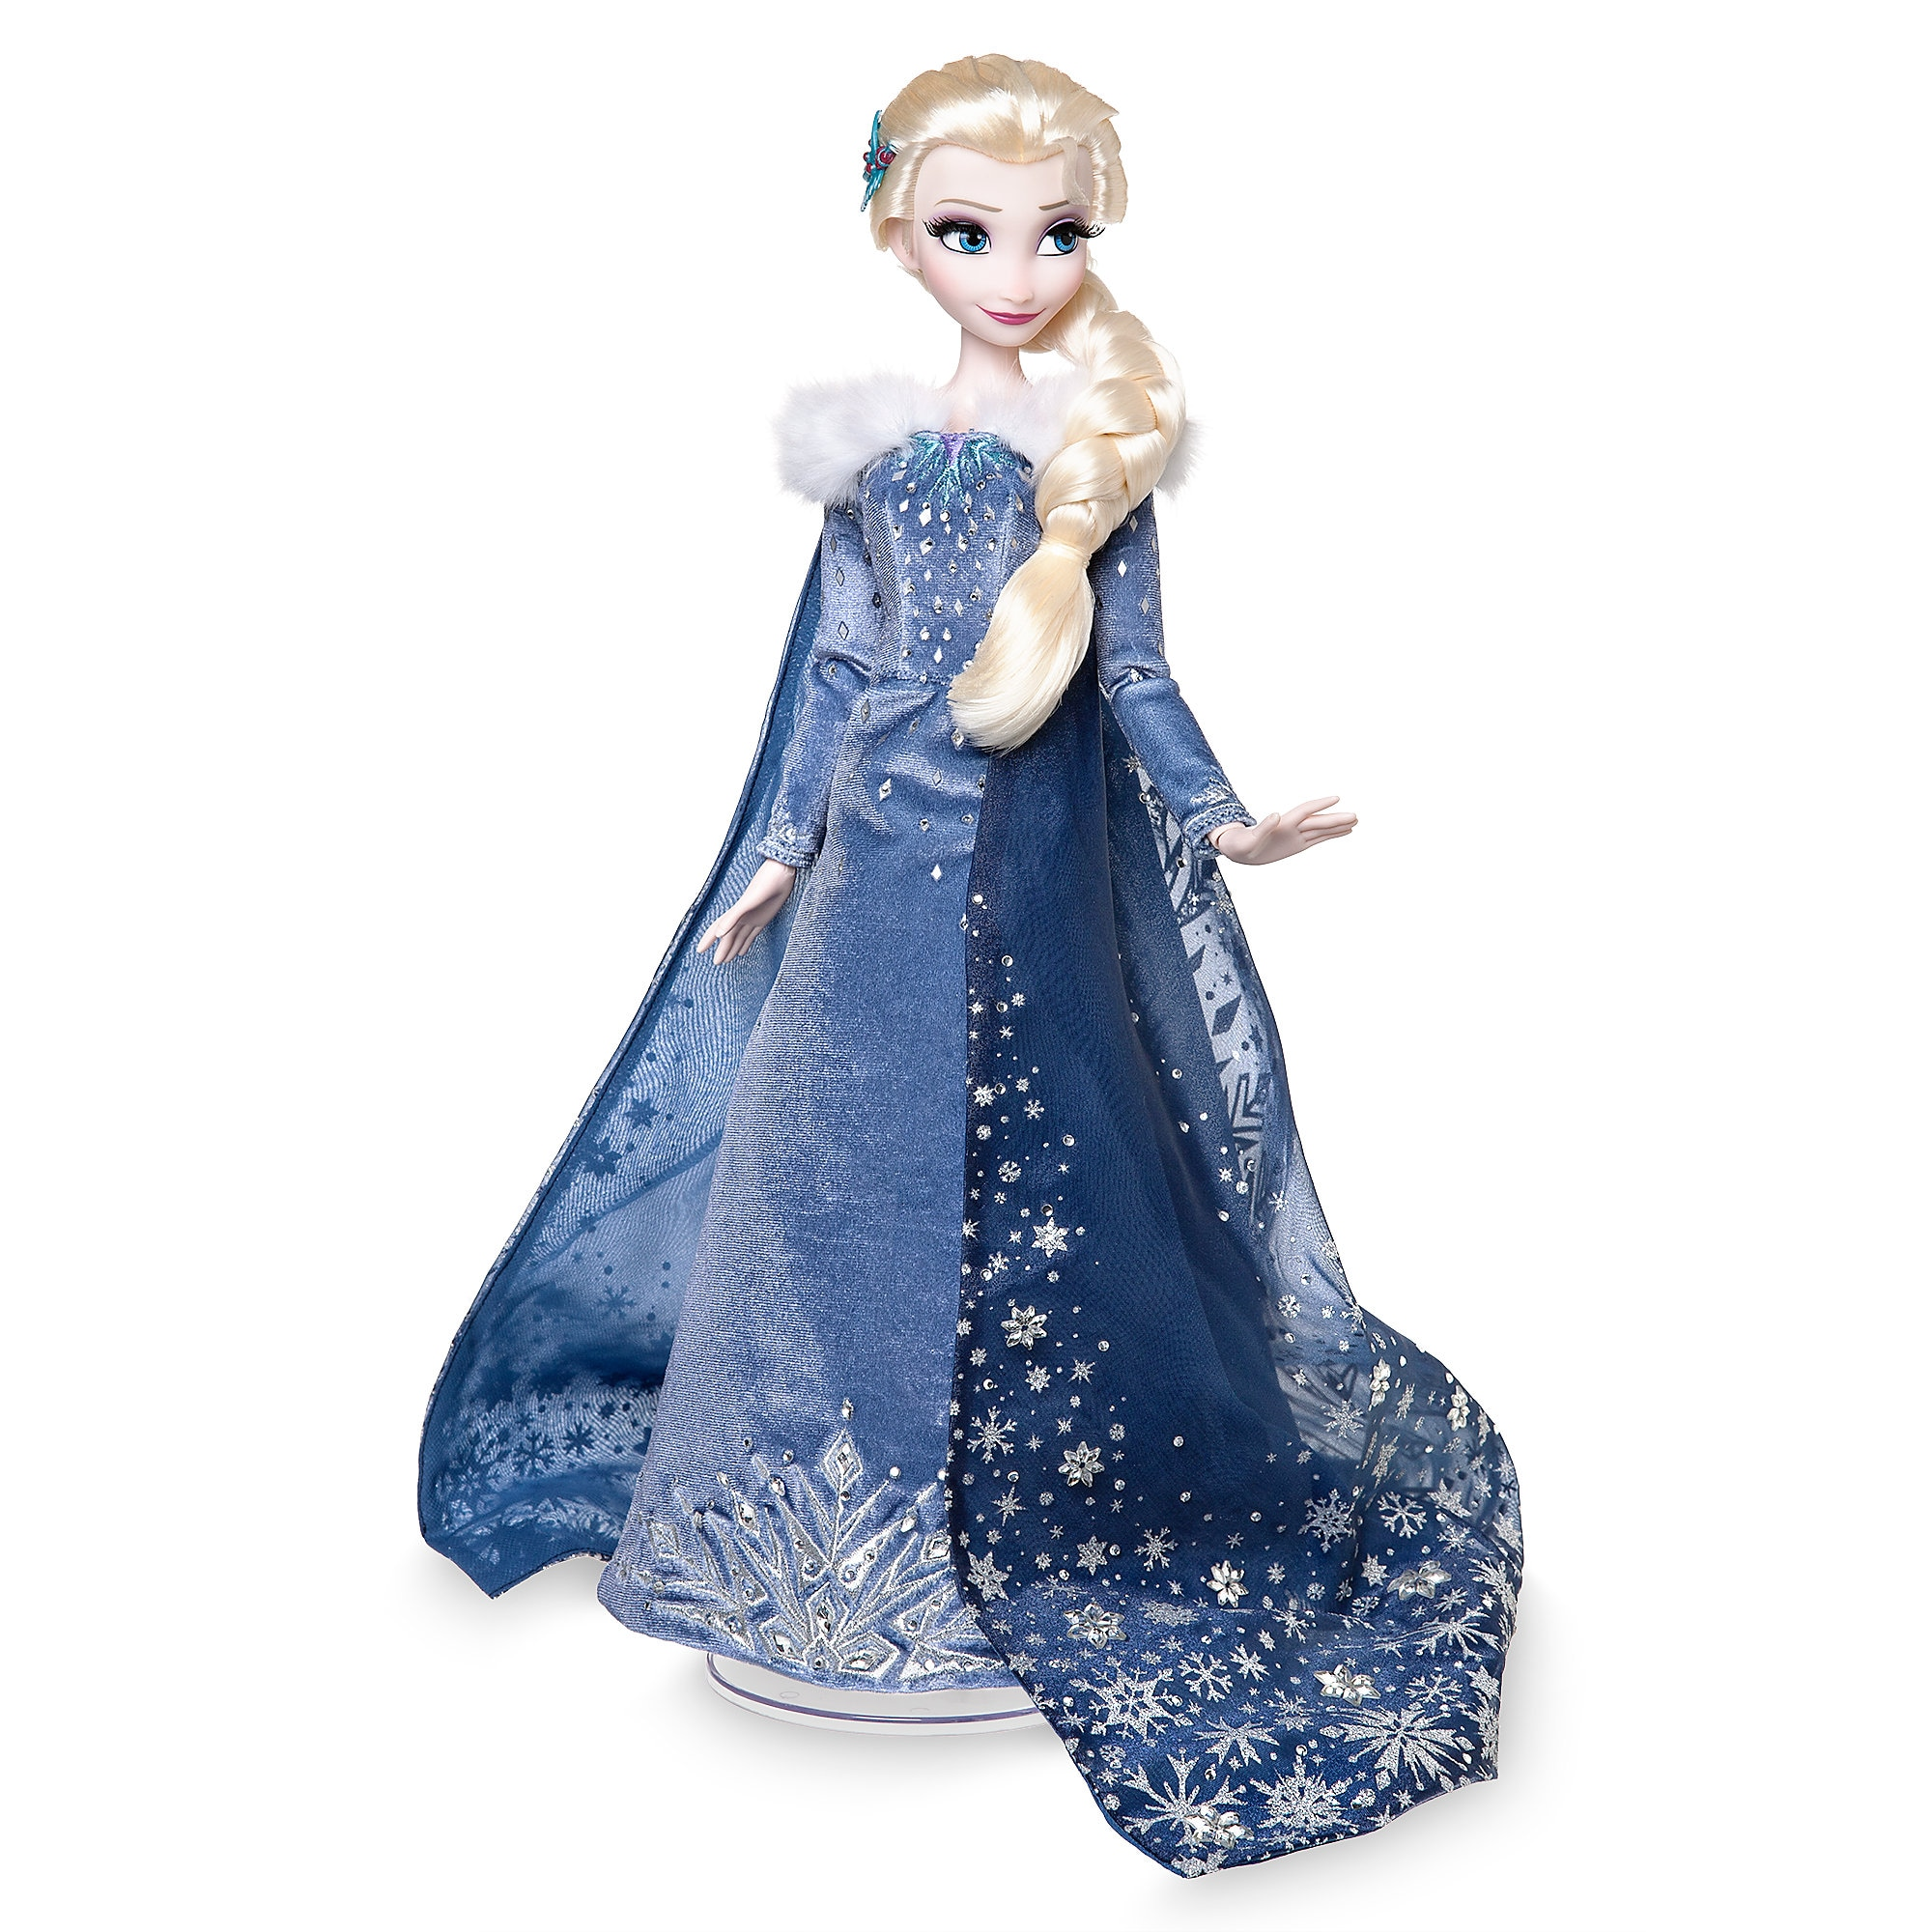 Dolls Disney Frozen Classic Fashion Elsa Exquisite Craftsmanship;